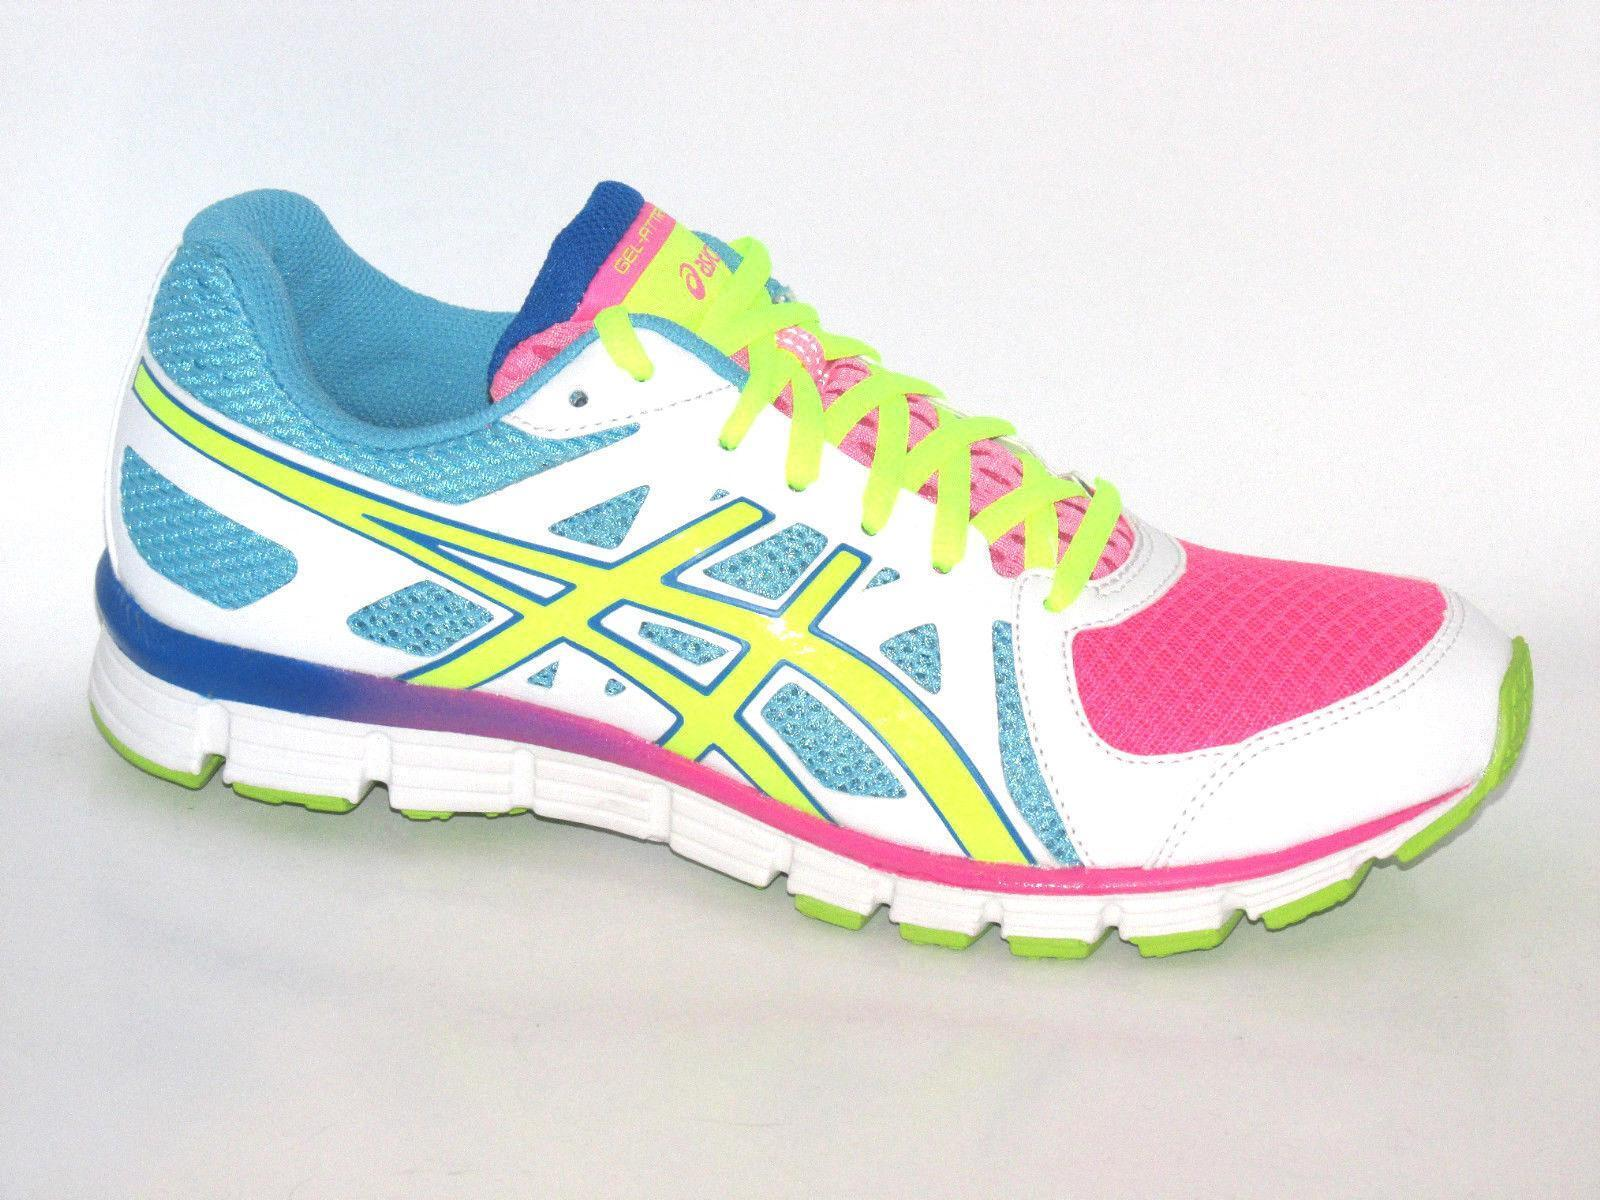 new arrivals c73b1 9bb5a Mujer Mujer Mujer ASICS Running Zapatillas Casual salvaje gel-attract t28rq  2018 064080